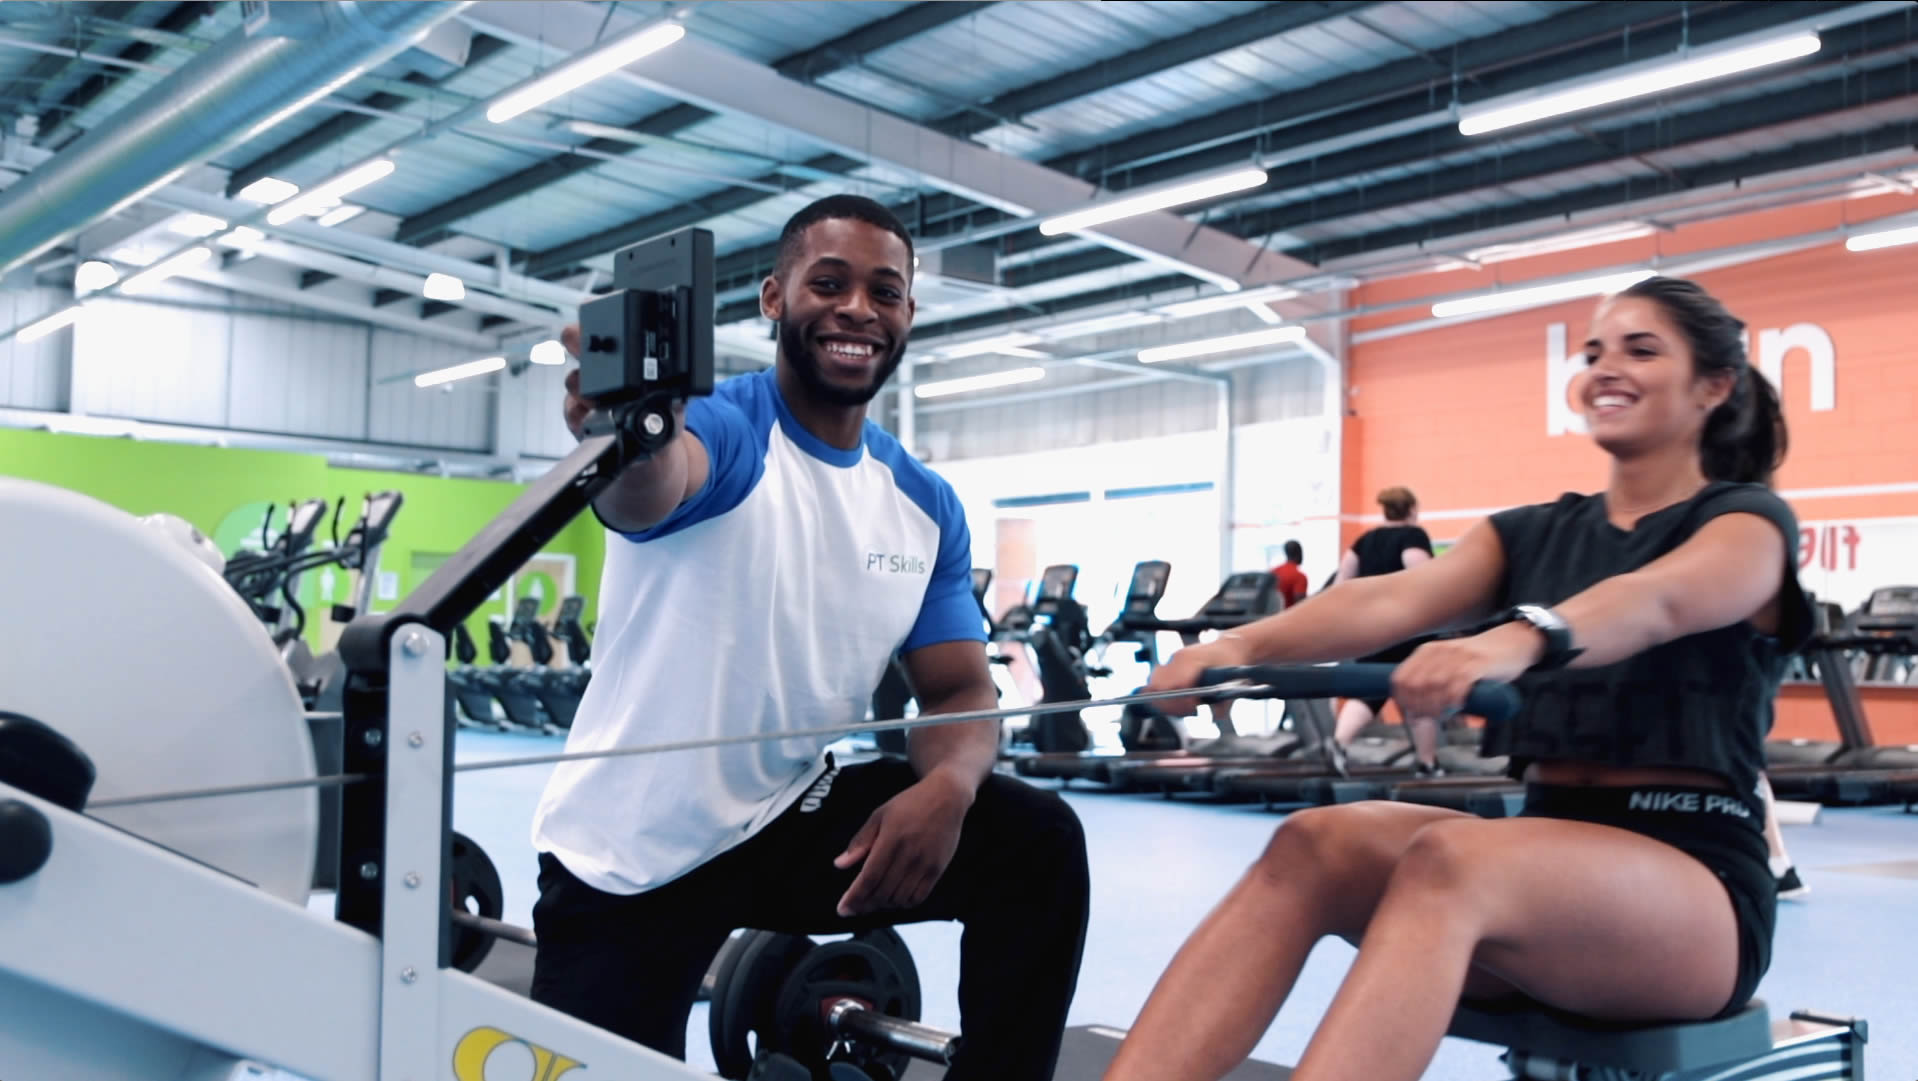 Personal Training Course Tutor